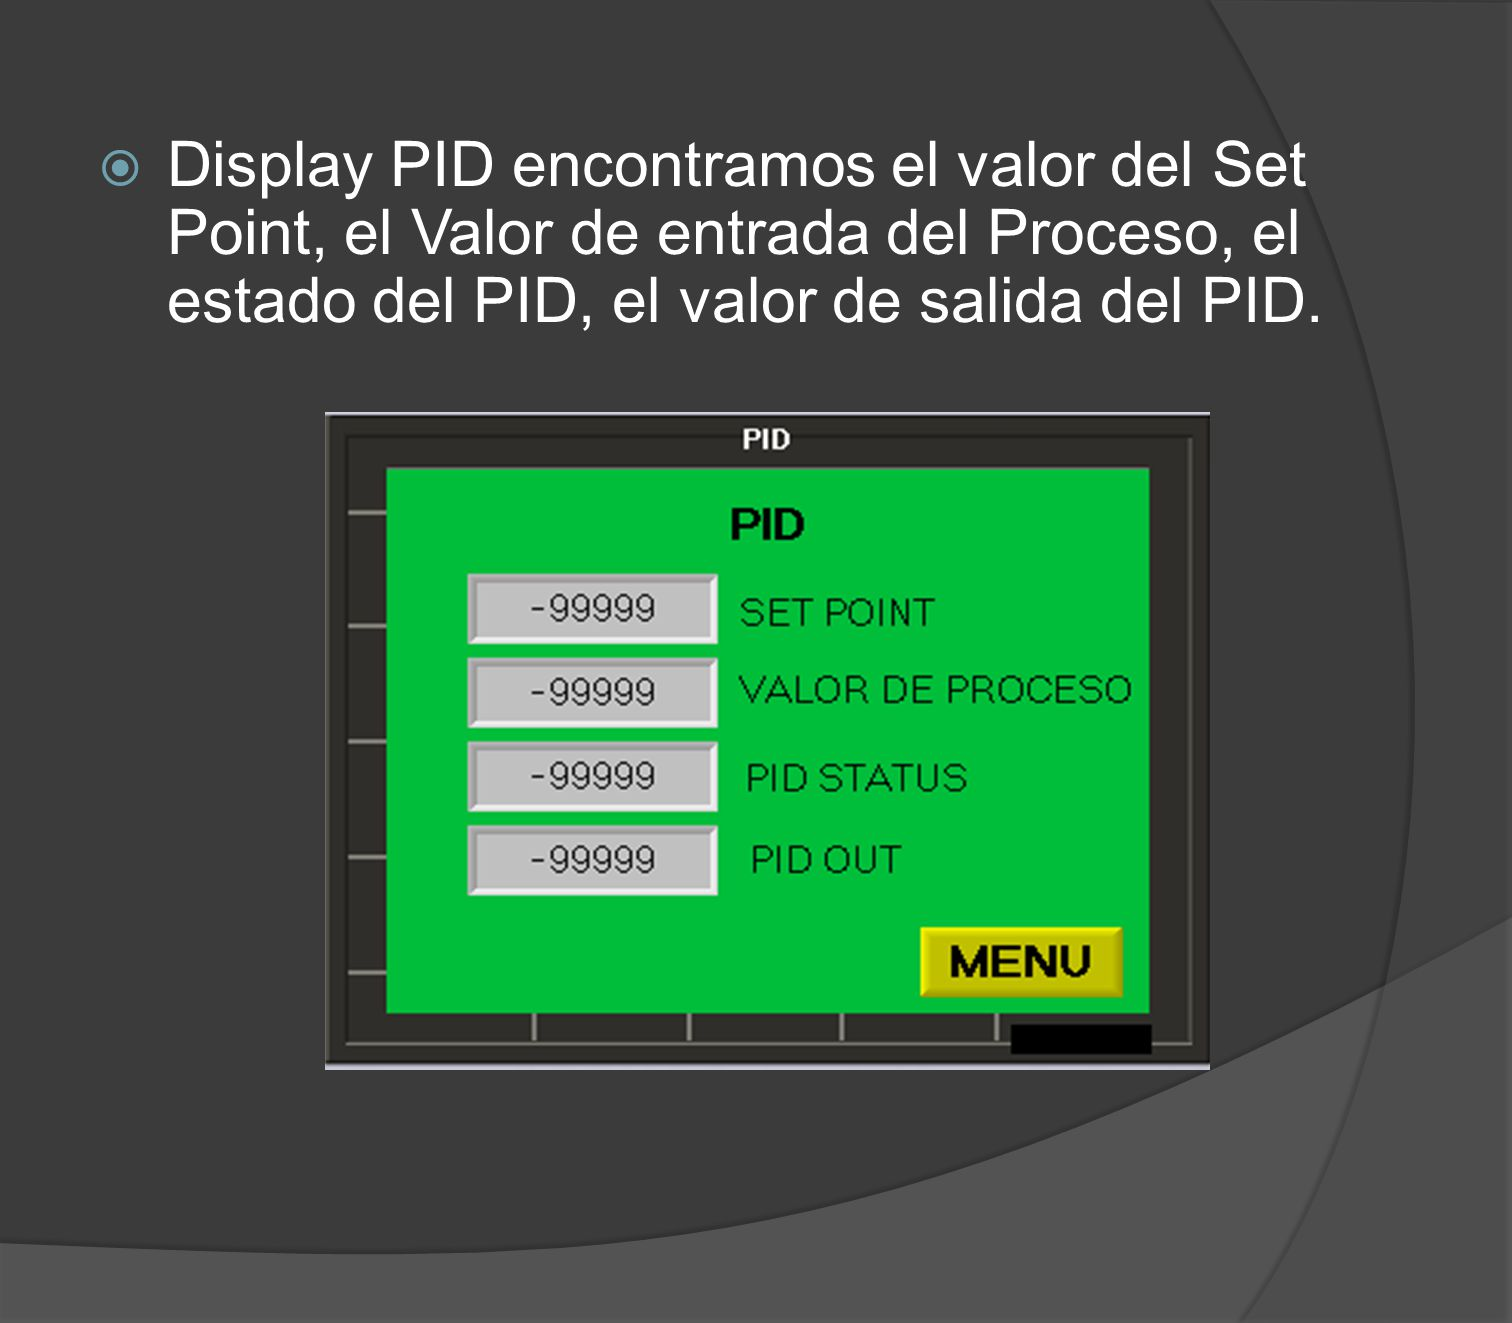 Display PID encontramos el valor del Set Point, el Valor de entrada del Proceso, el estado del PID, el valor de salida del PID.